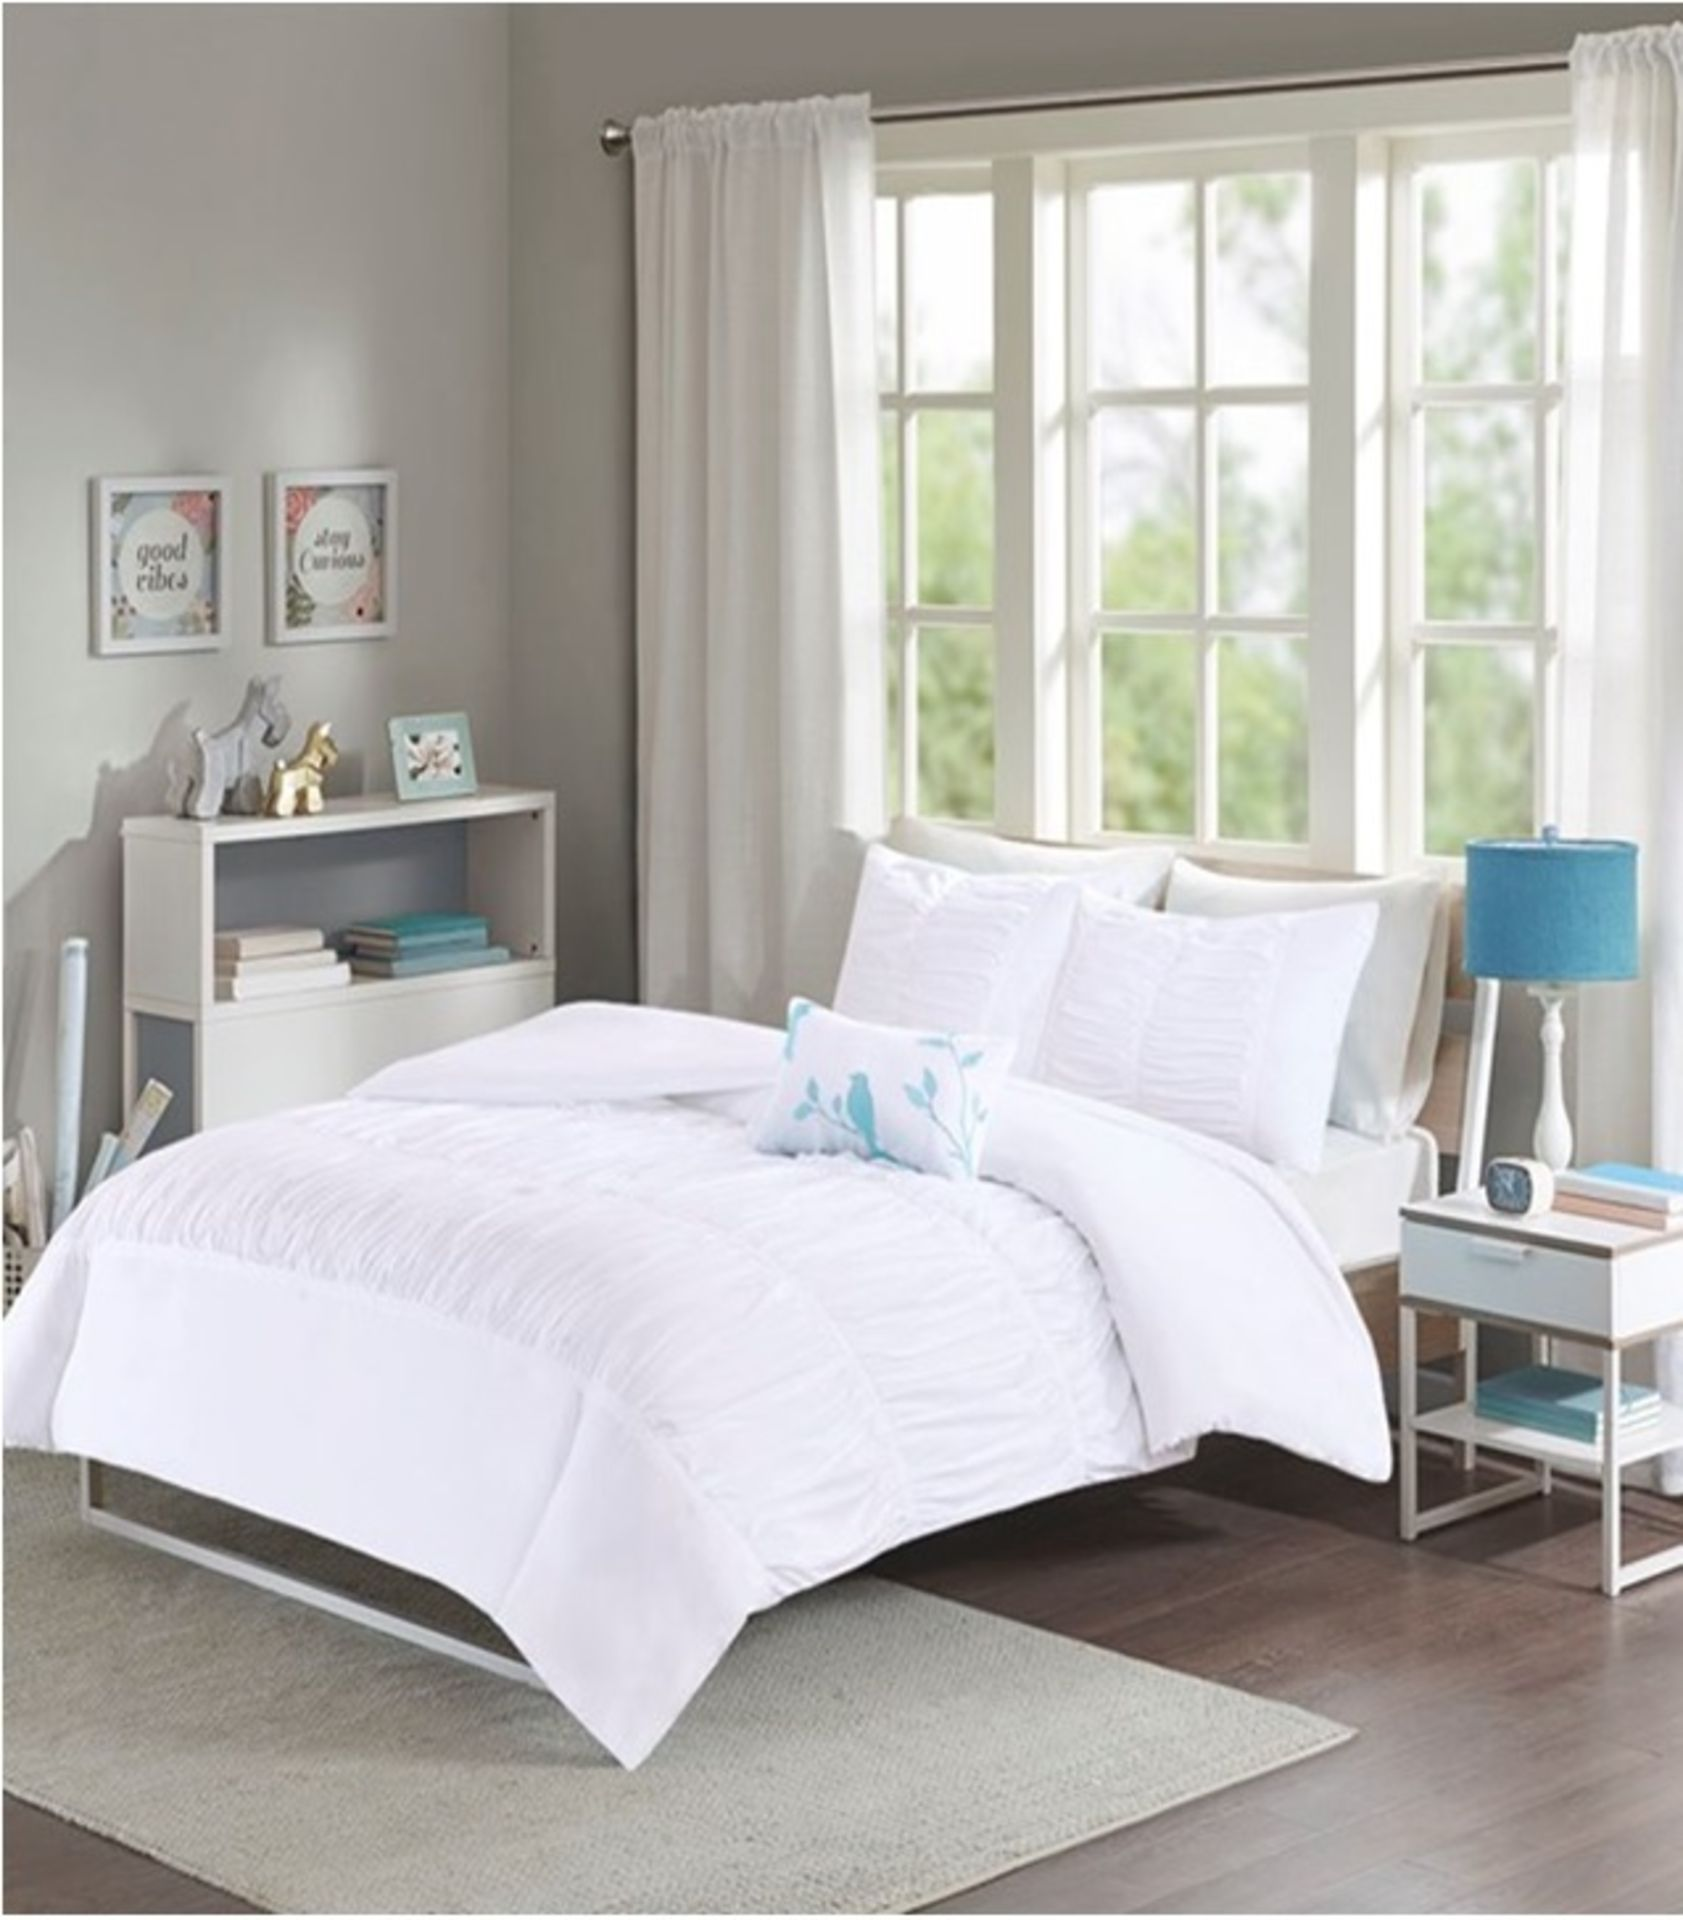 Lot 57 - 1 x Madison Park Mirimar Double Duvet Set White - Product Code MP12-0023UK (Brand New - RRP £39.99)